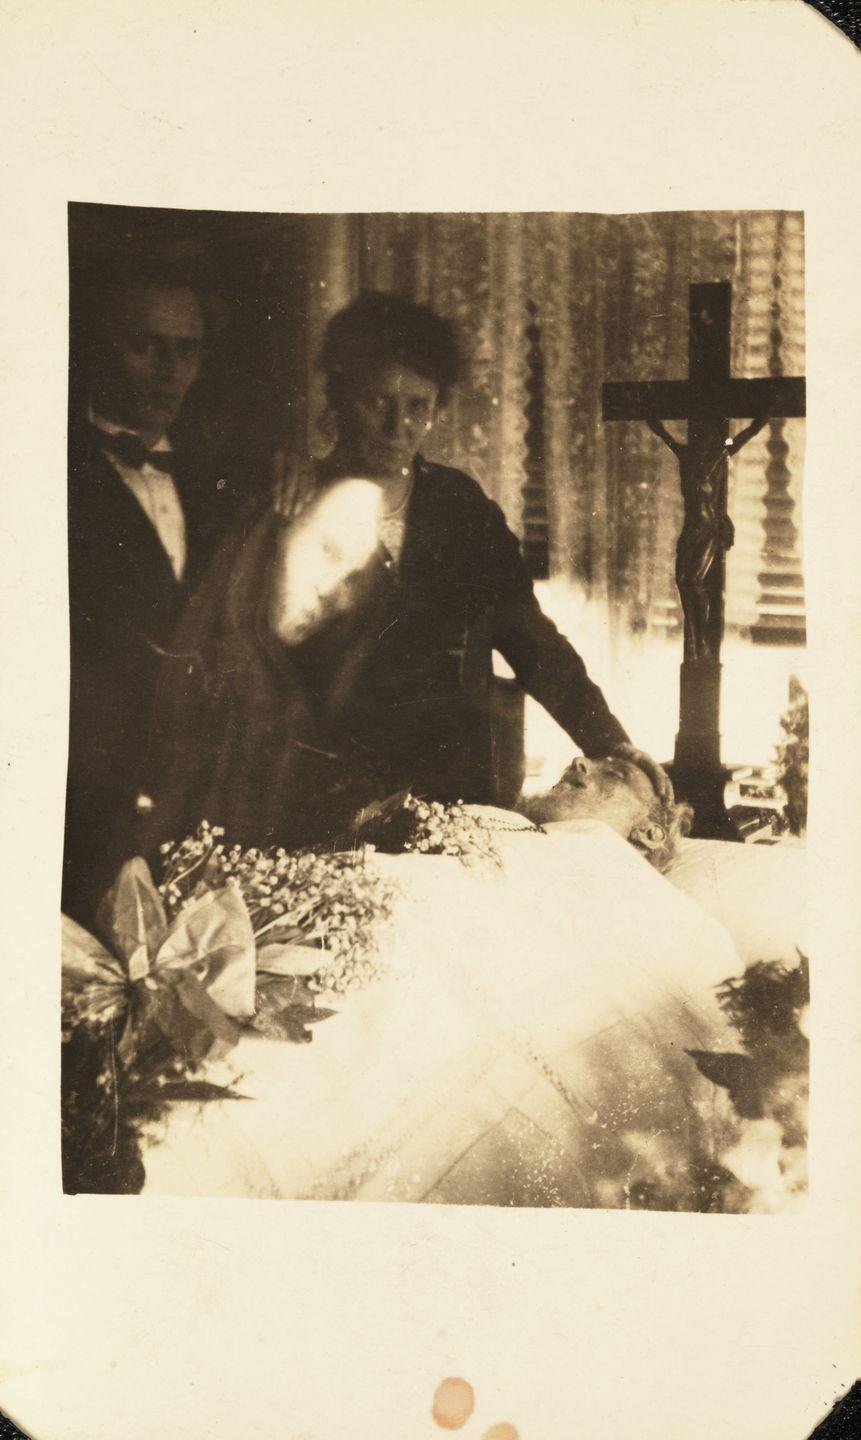 """<p>A woman stands with her hand on the forehead of a deceased loved one, while a ghostly face watches over. According to BBC<em>, </em><a href=""""https://www.bbc.com/future/article/20150629-the-intriguing-history-of-ghost-photography"""" rel=""""nofollow noopener"""" target=""""_blank"""" data-ylk=""""slk:spirit photography was popularized during the mid-19th century"""" class=""""link rapid-noclick-resp"""">spirit photography was popularized during the mid-19th century</a>, as cameras became readily available. The technique used multiple exposures to create the appearance of ghostly figures. </p>"""